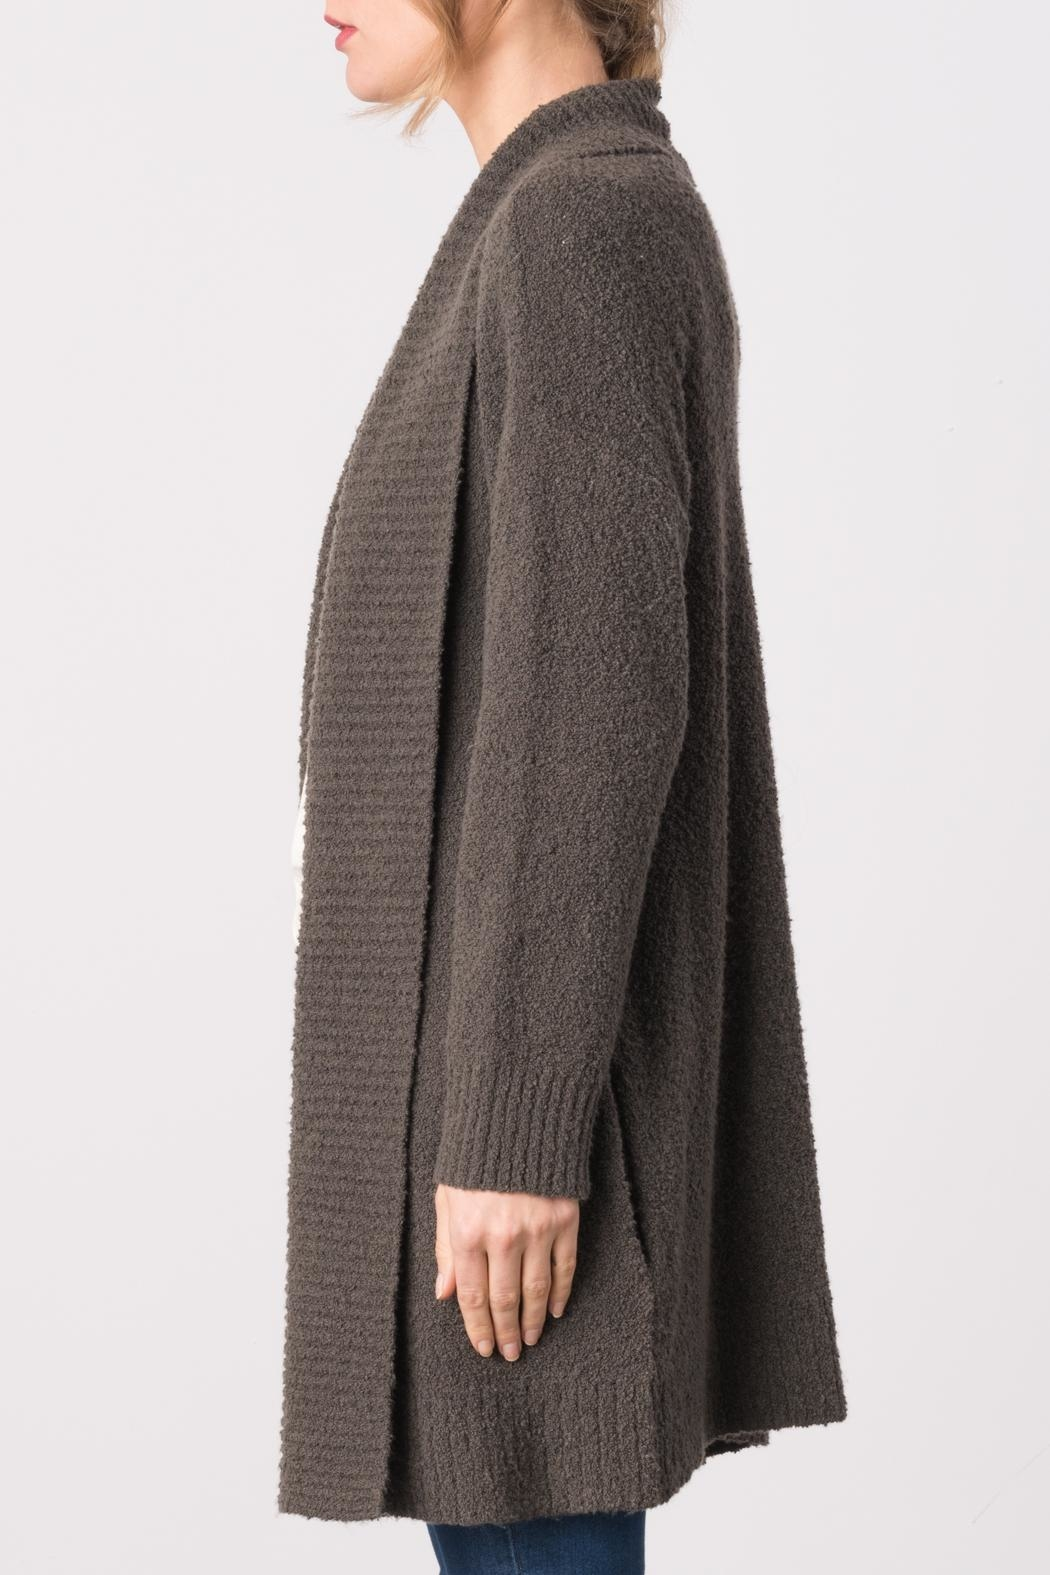 Margaret O'Leary Bianca Cardigan - Front Full Image